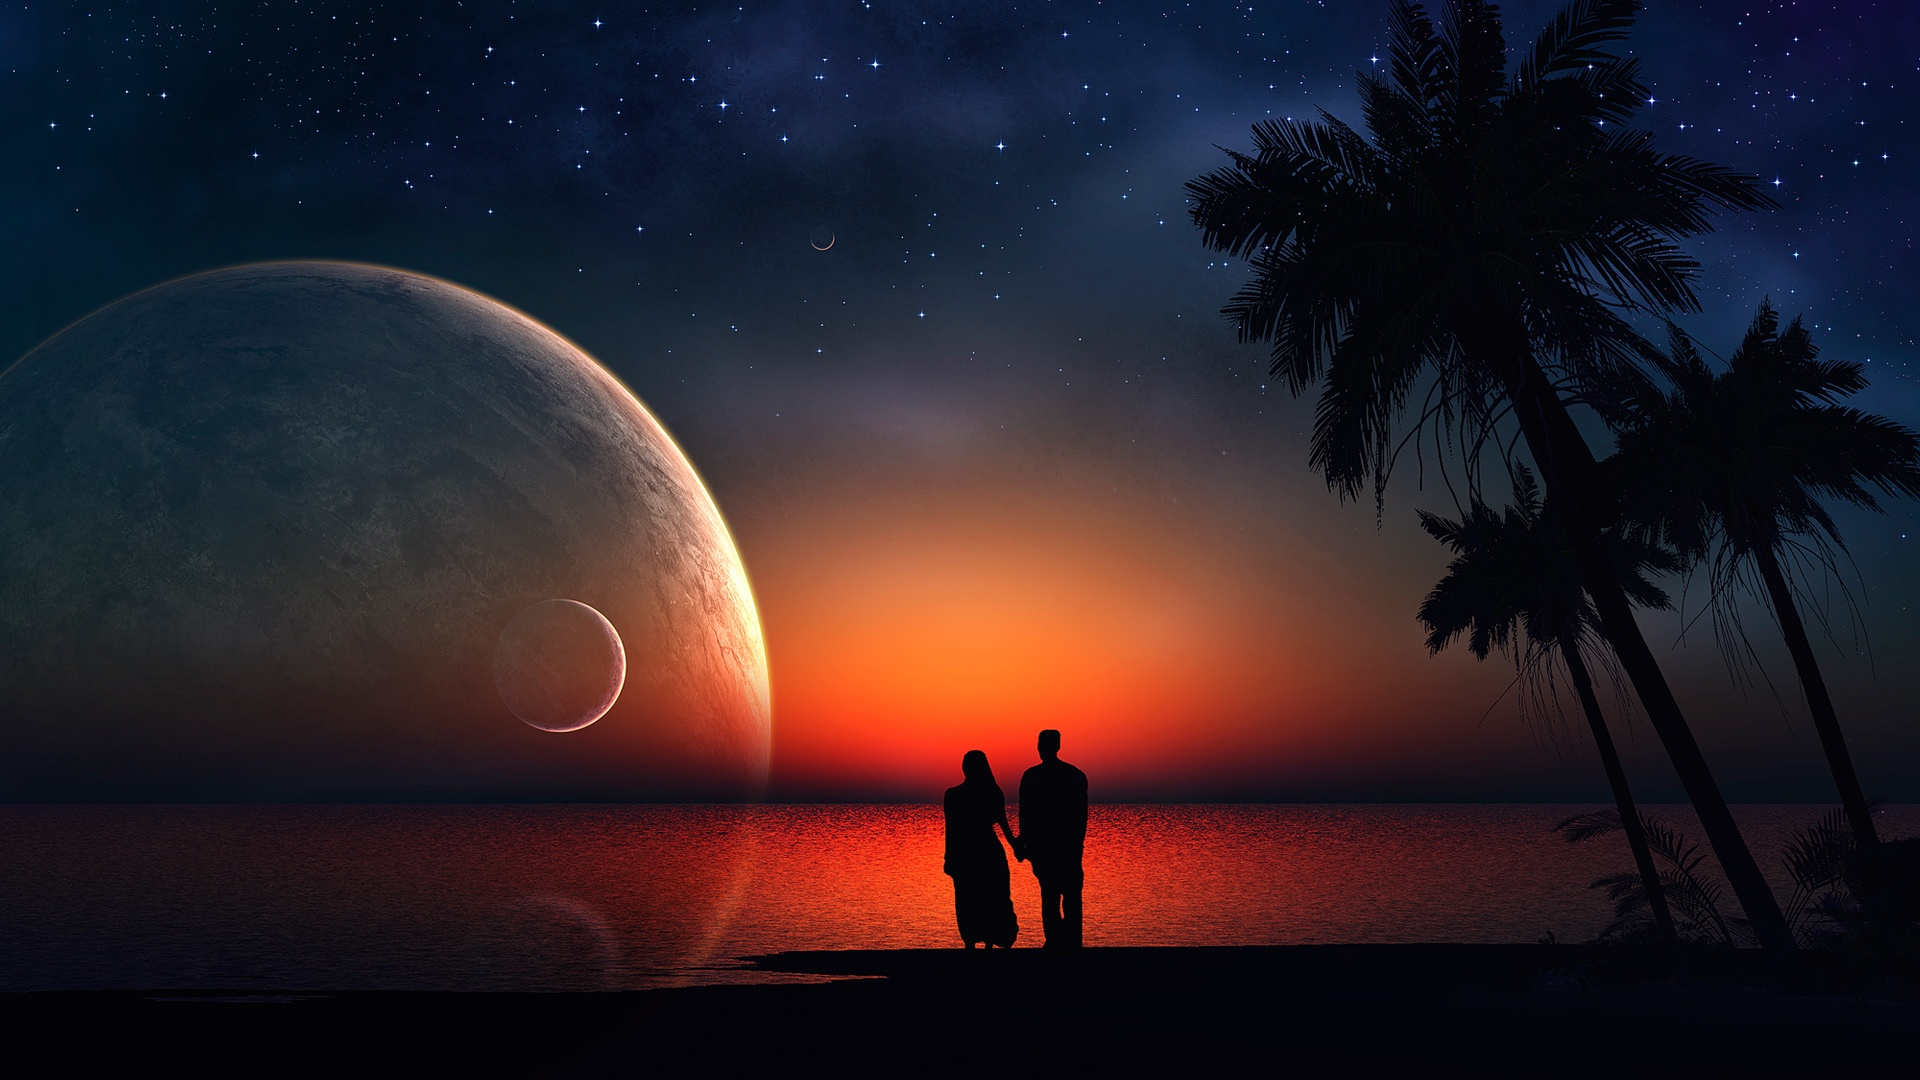 Love couple Full Hd Desktop Wallpaper : Love Desktop Wallpaper Full HD - WallpaperSafari